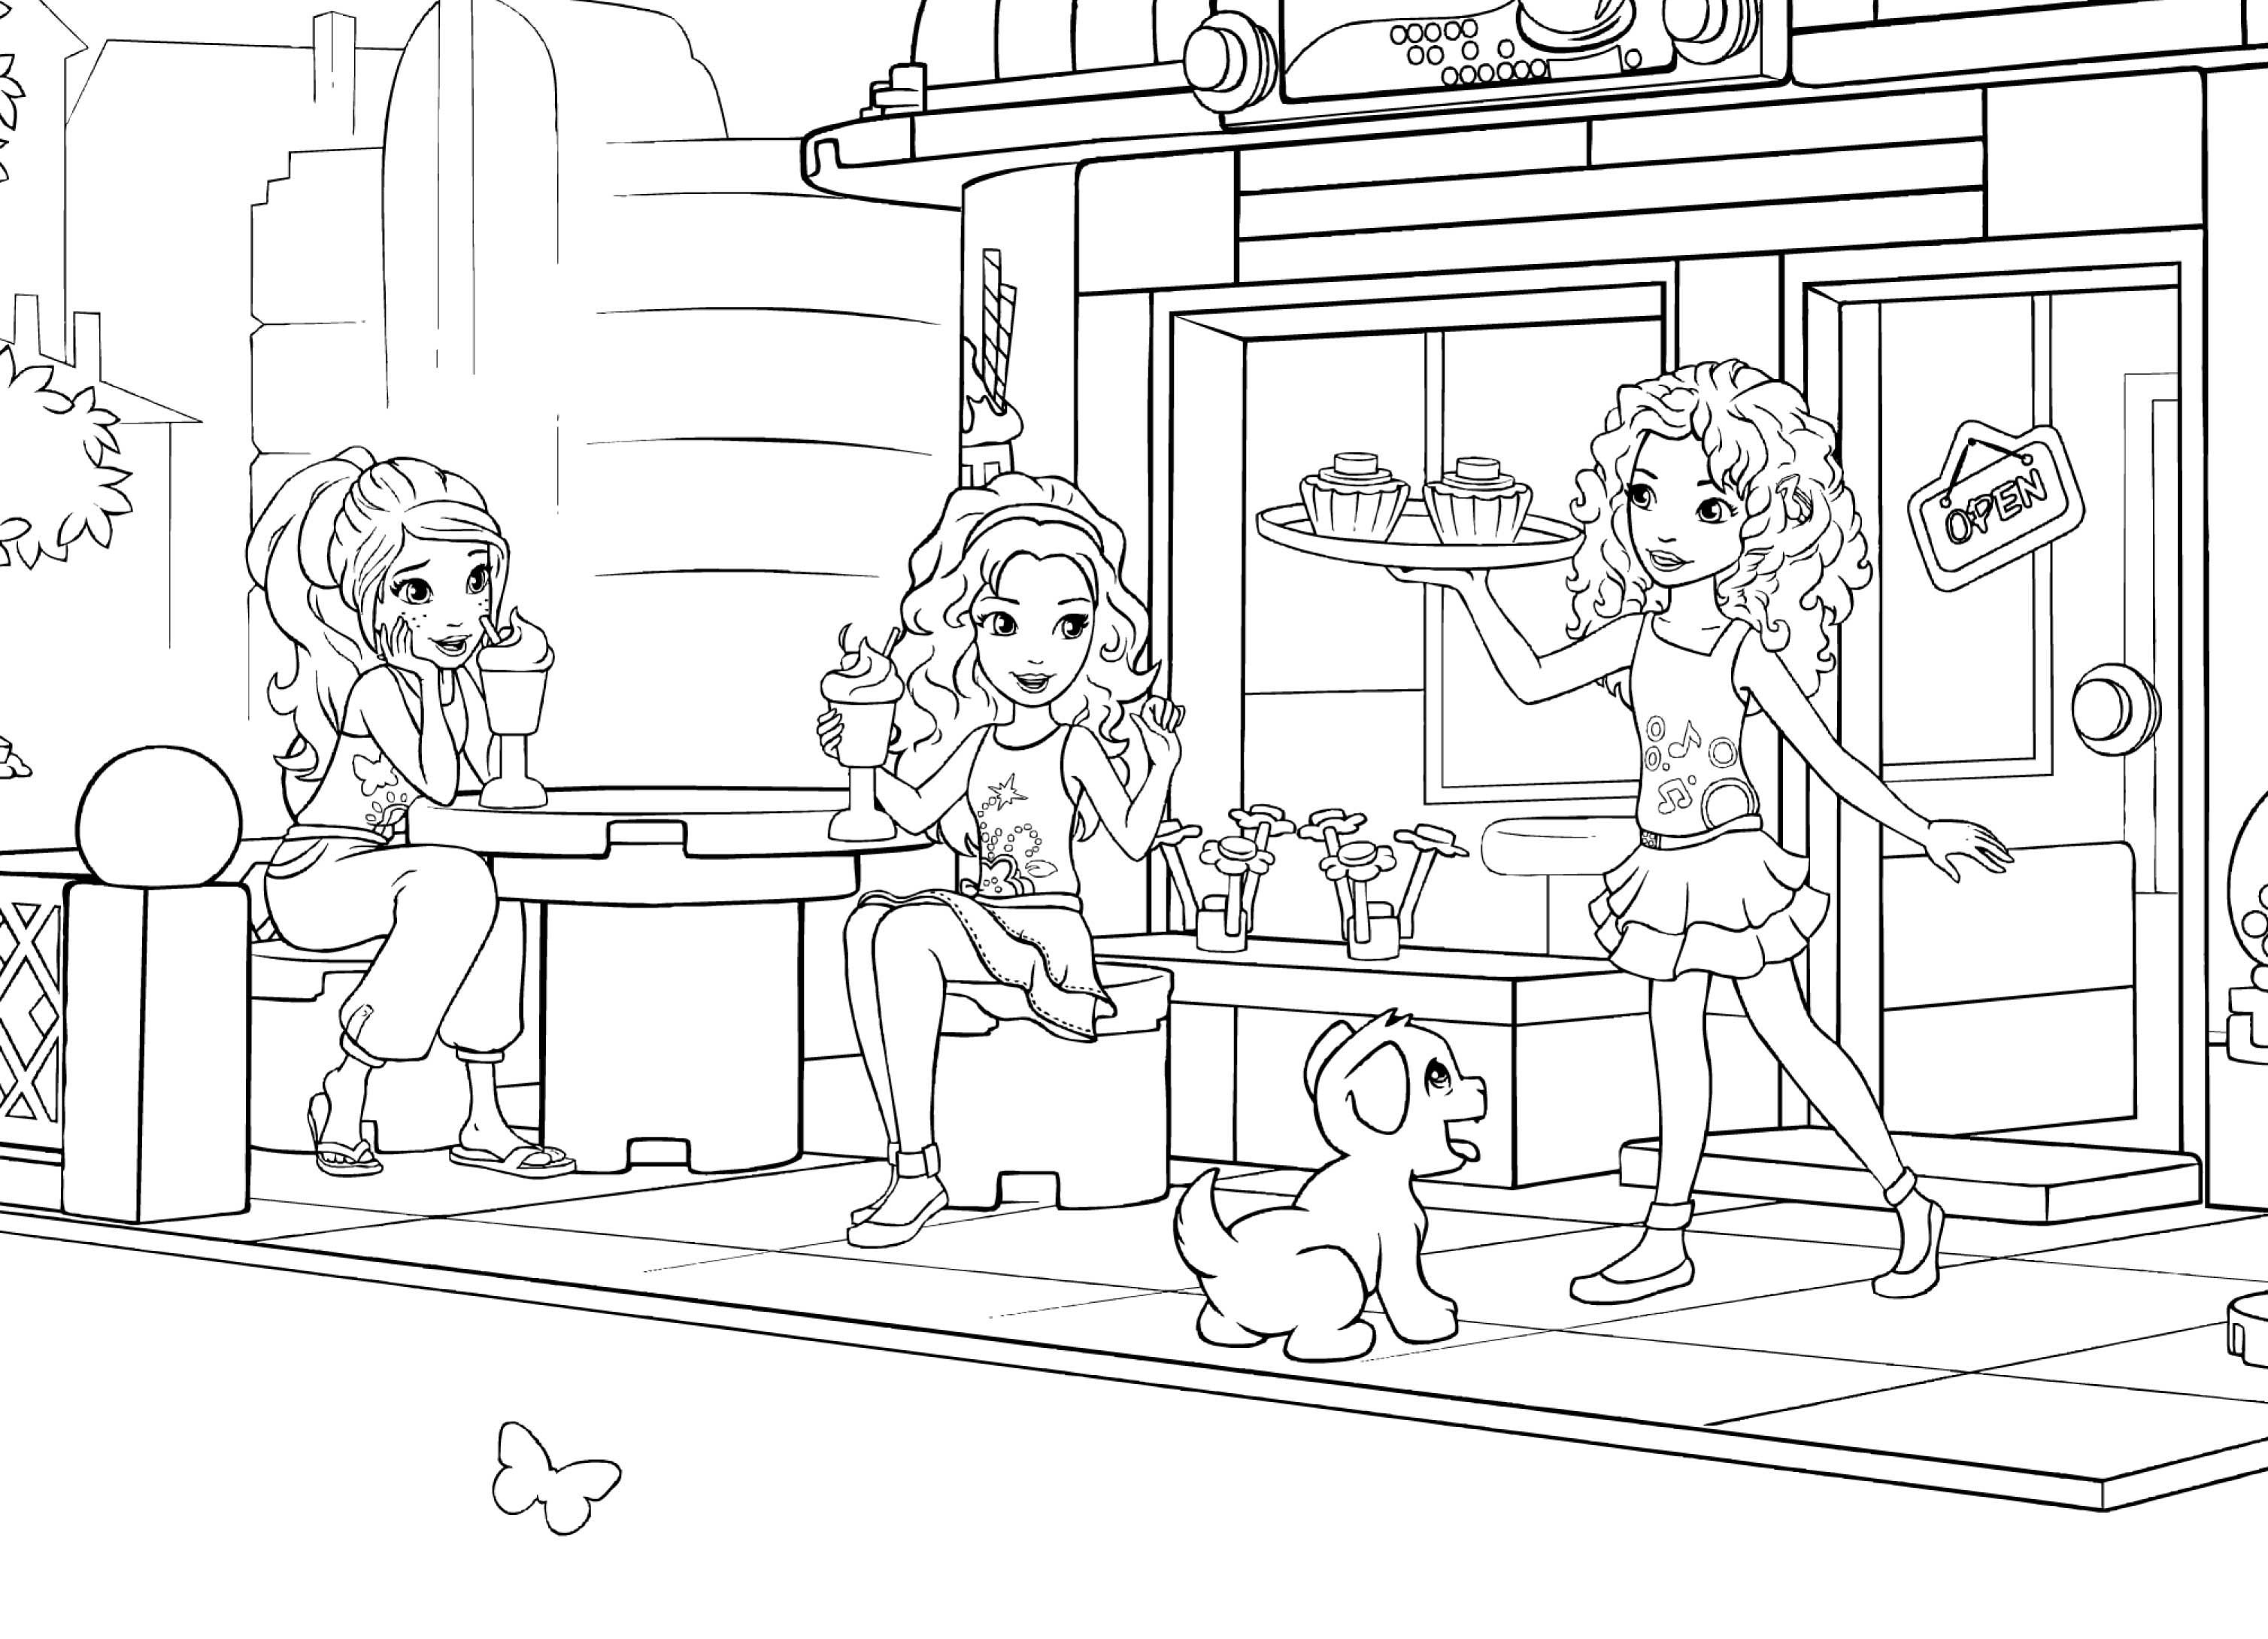 lego friends coloring pages 2020 lego friends coloring pages coloringrocks in 2020 2020 pages friends coloring lego